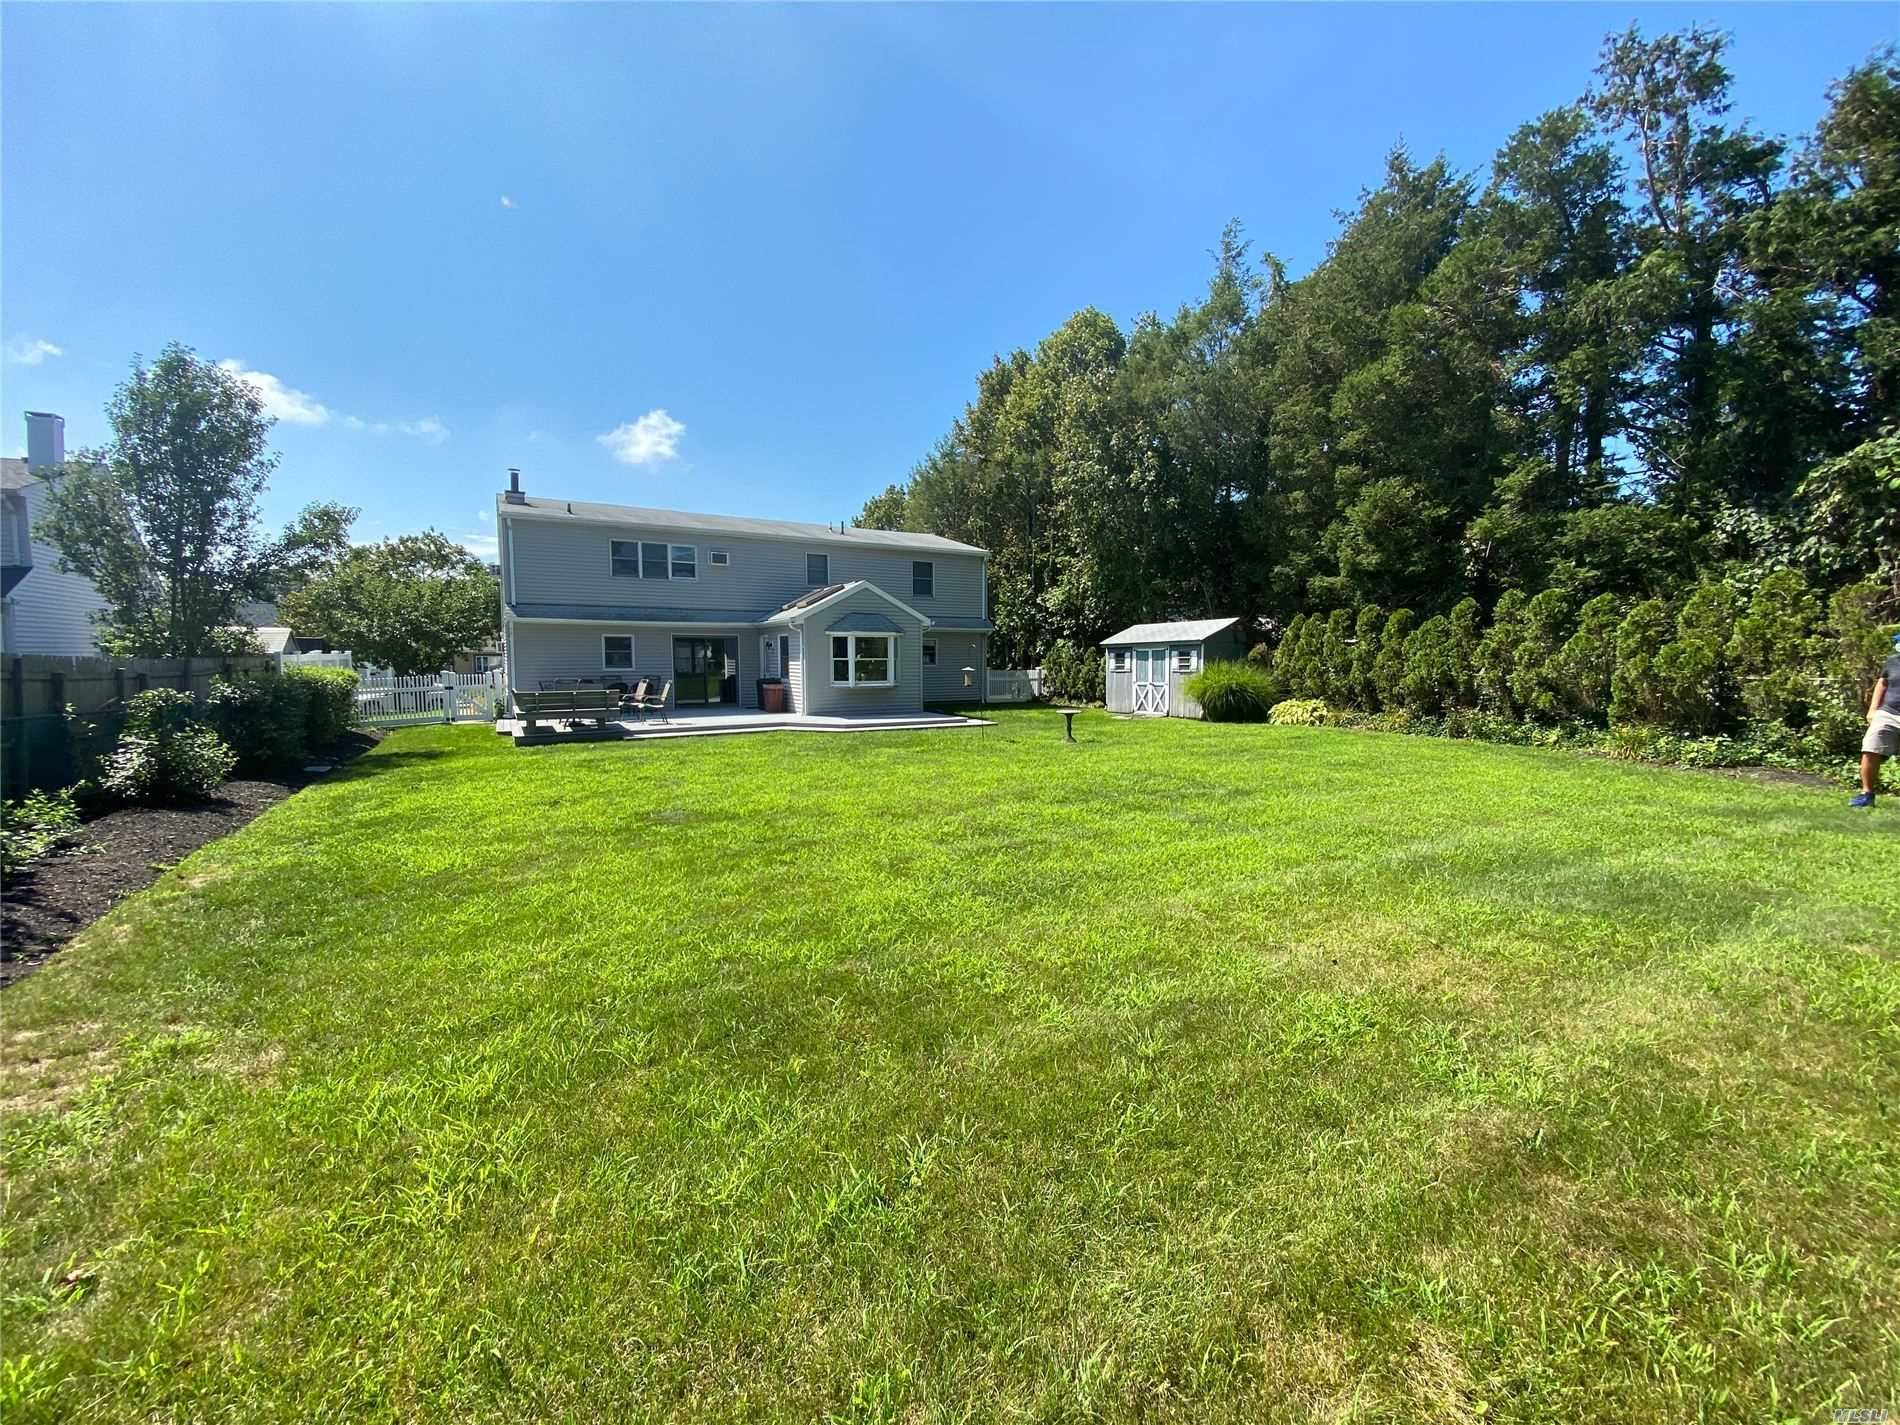 42 Plane Tree Lane, Saint James, NY 11780 - MLS#: 3241905